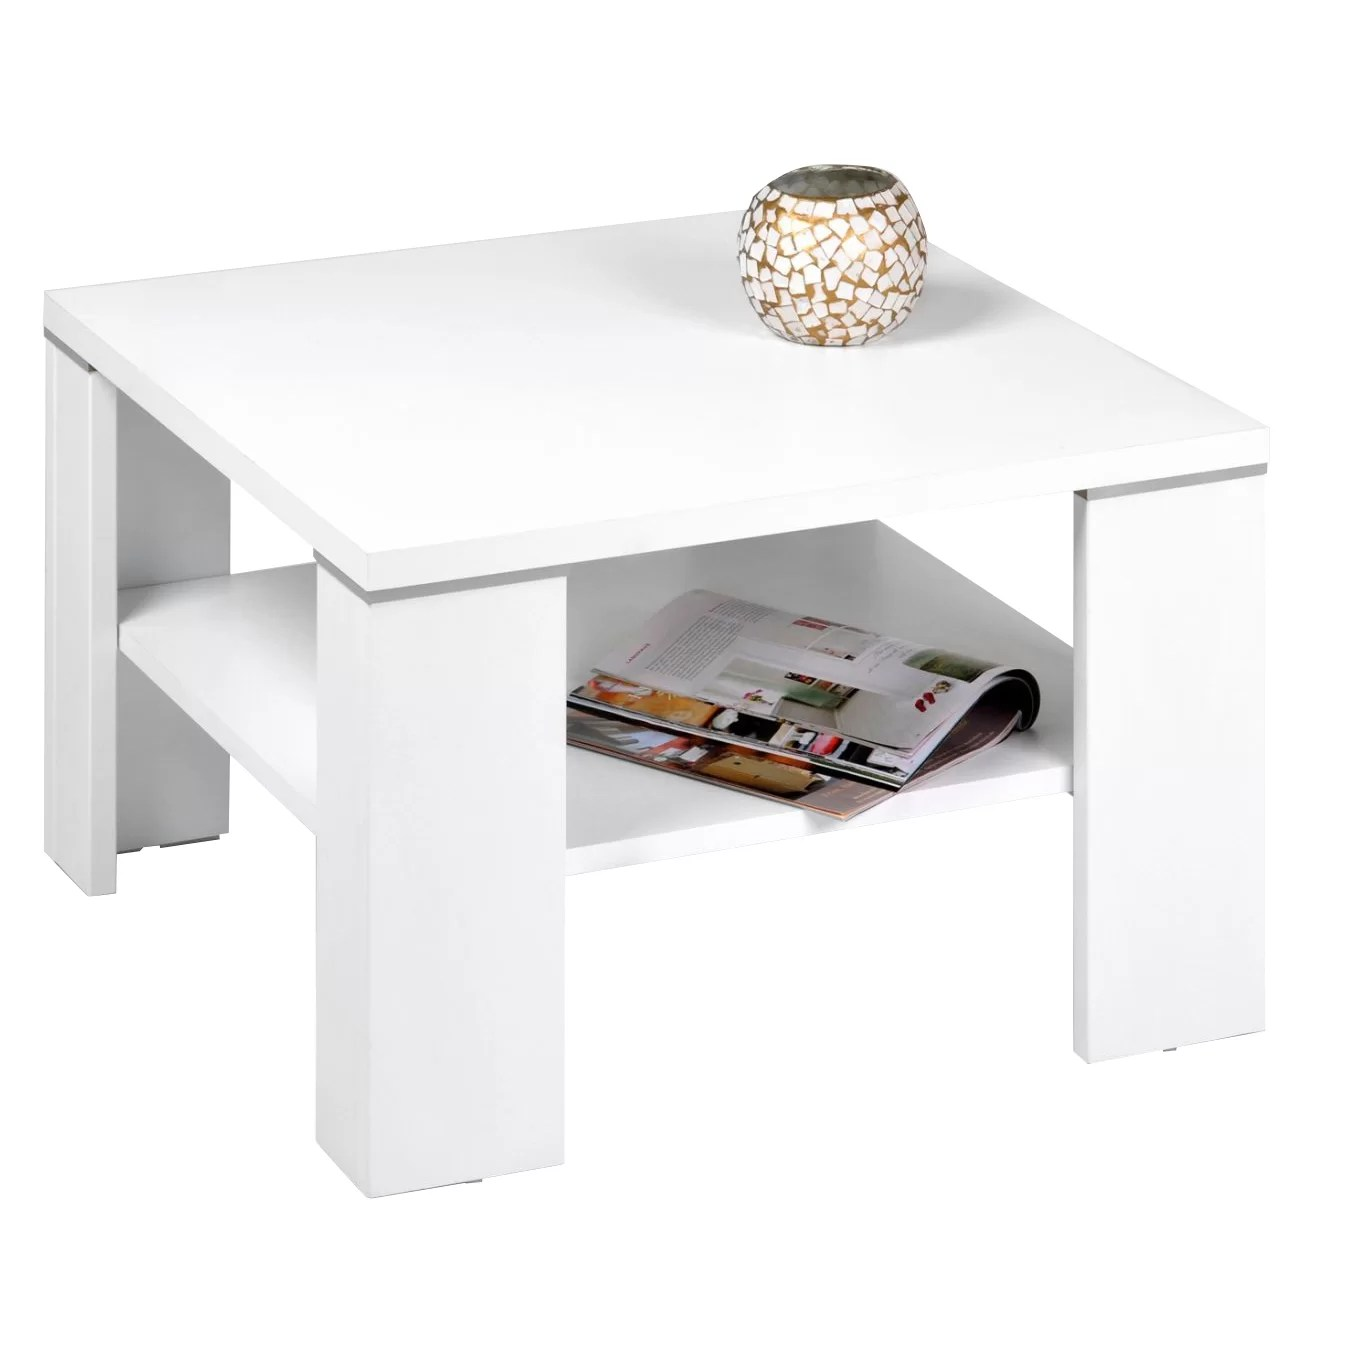 Santos Couchtisch Santos Coffee Table With Storage